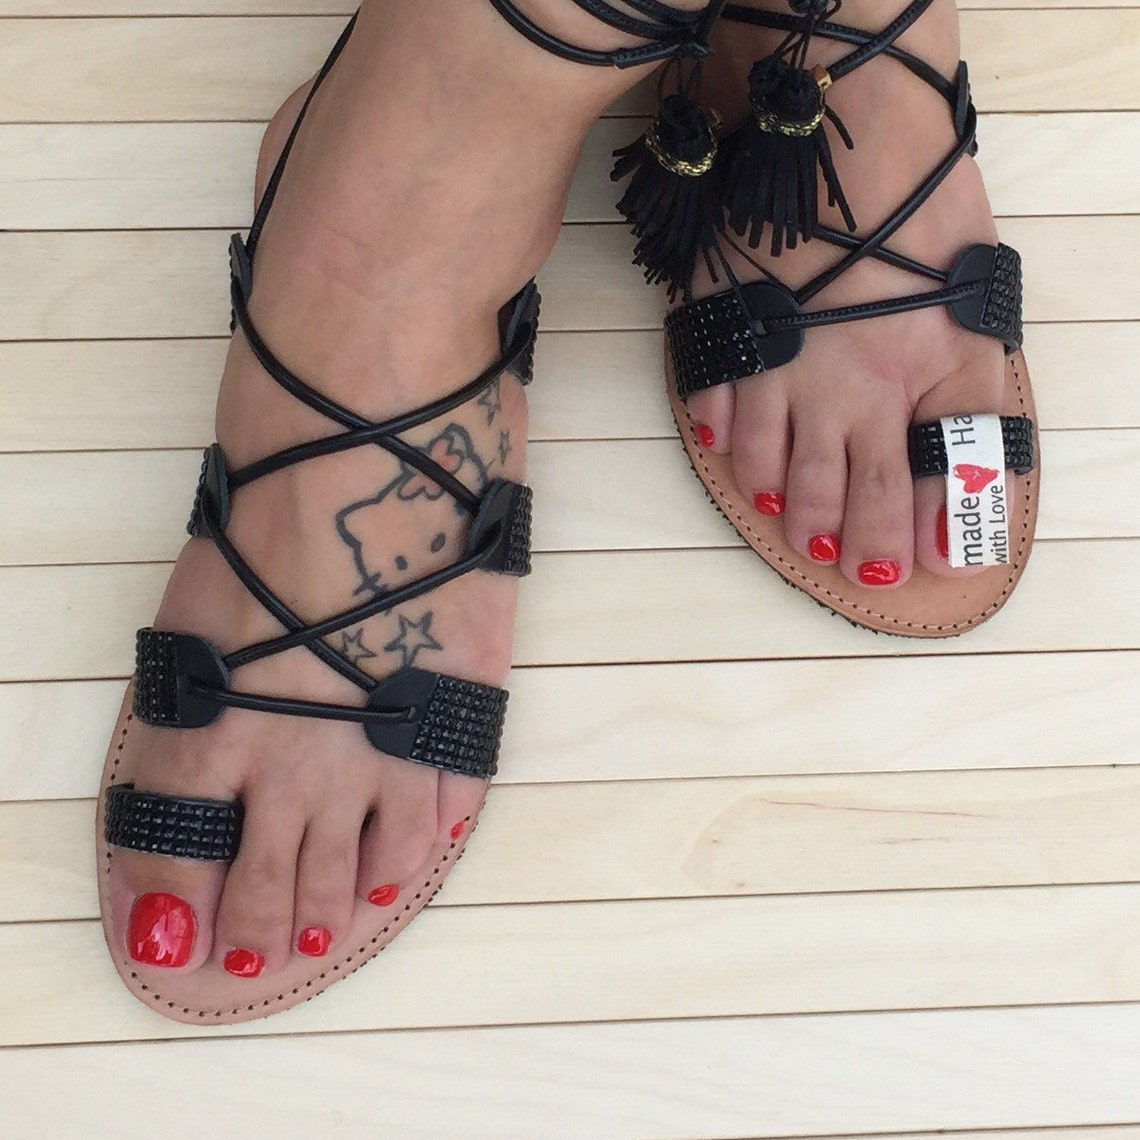 Tie Up Leather Sandals Black Mosaic Handmade - Big Sale oDm3n